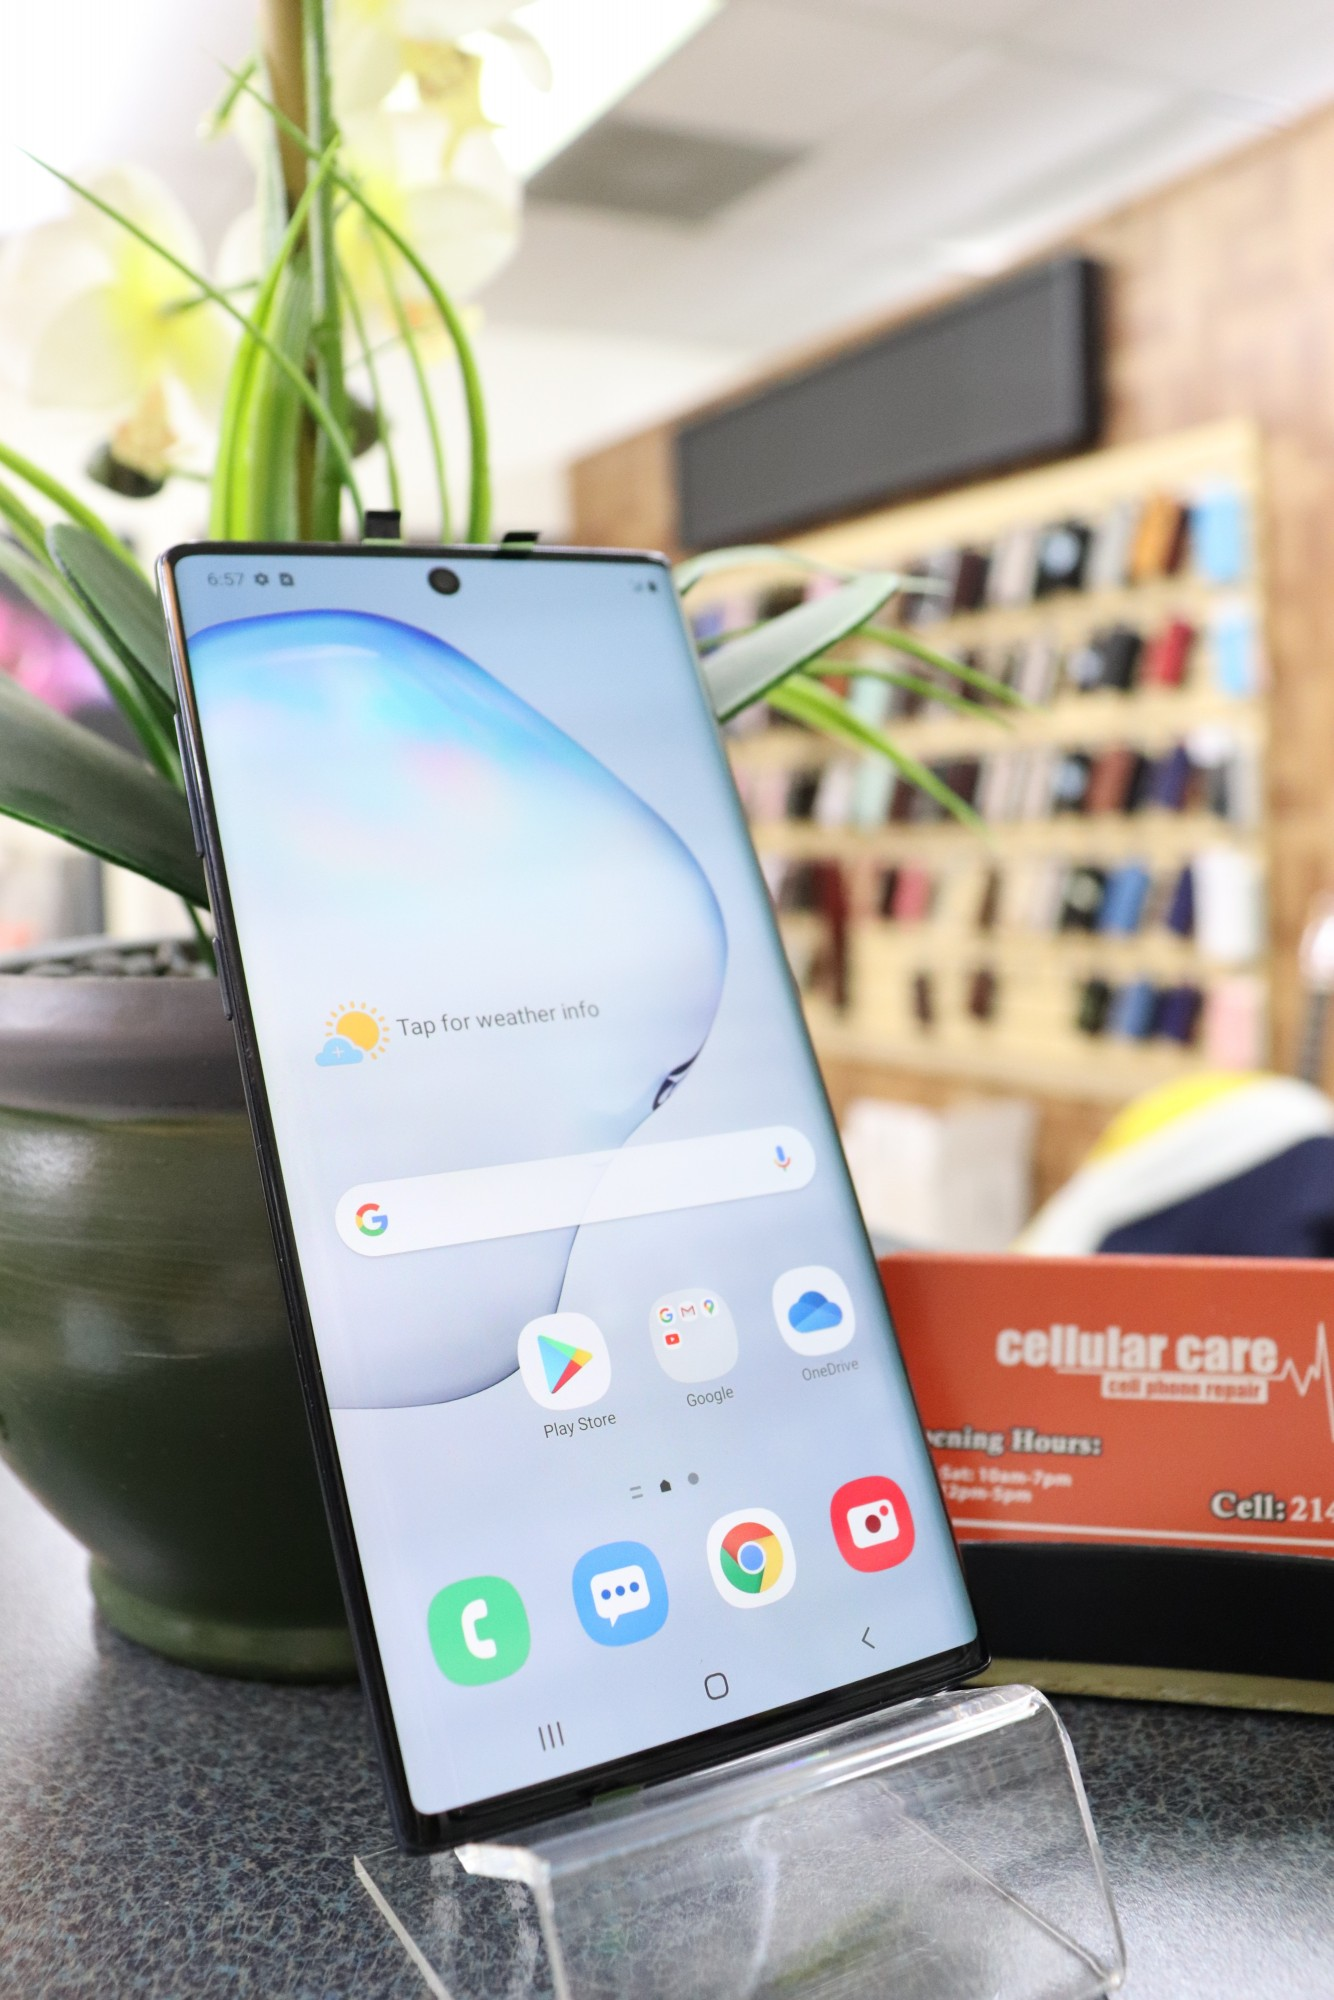 1611 – Samsung NOTE 10 256GB Black Unlocked $440 – Store Pick Up Address: Cellular Care 300 N Coit Rd #157 Richardson TX, 75080 Mon-Sat: 11Am to 7Pm Sun: 12 to 5Pm *About this item: -Condition: 8/10 -30 Days Warranty By Cellular Care.